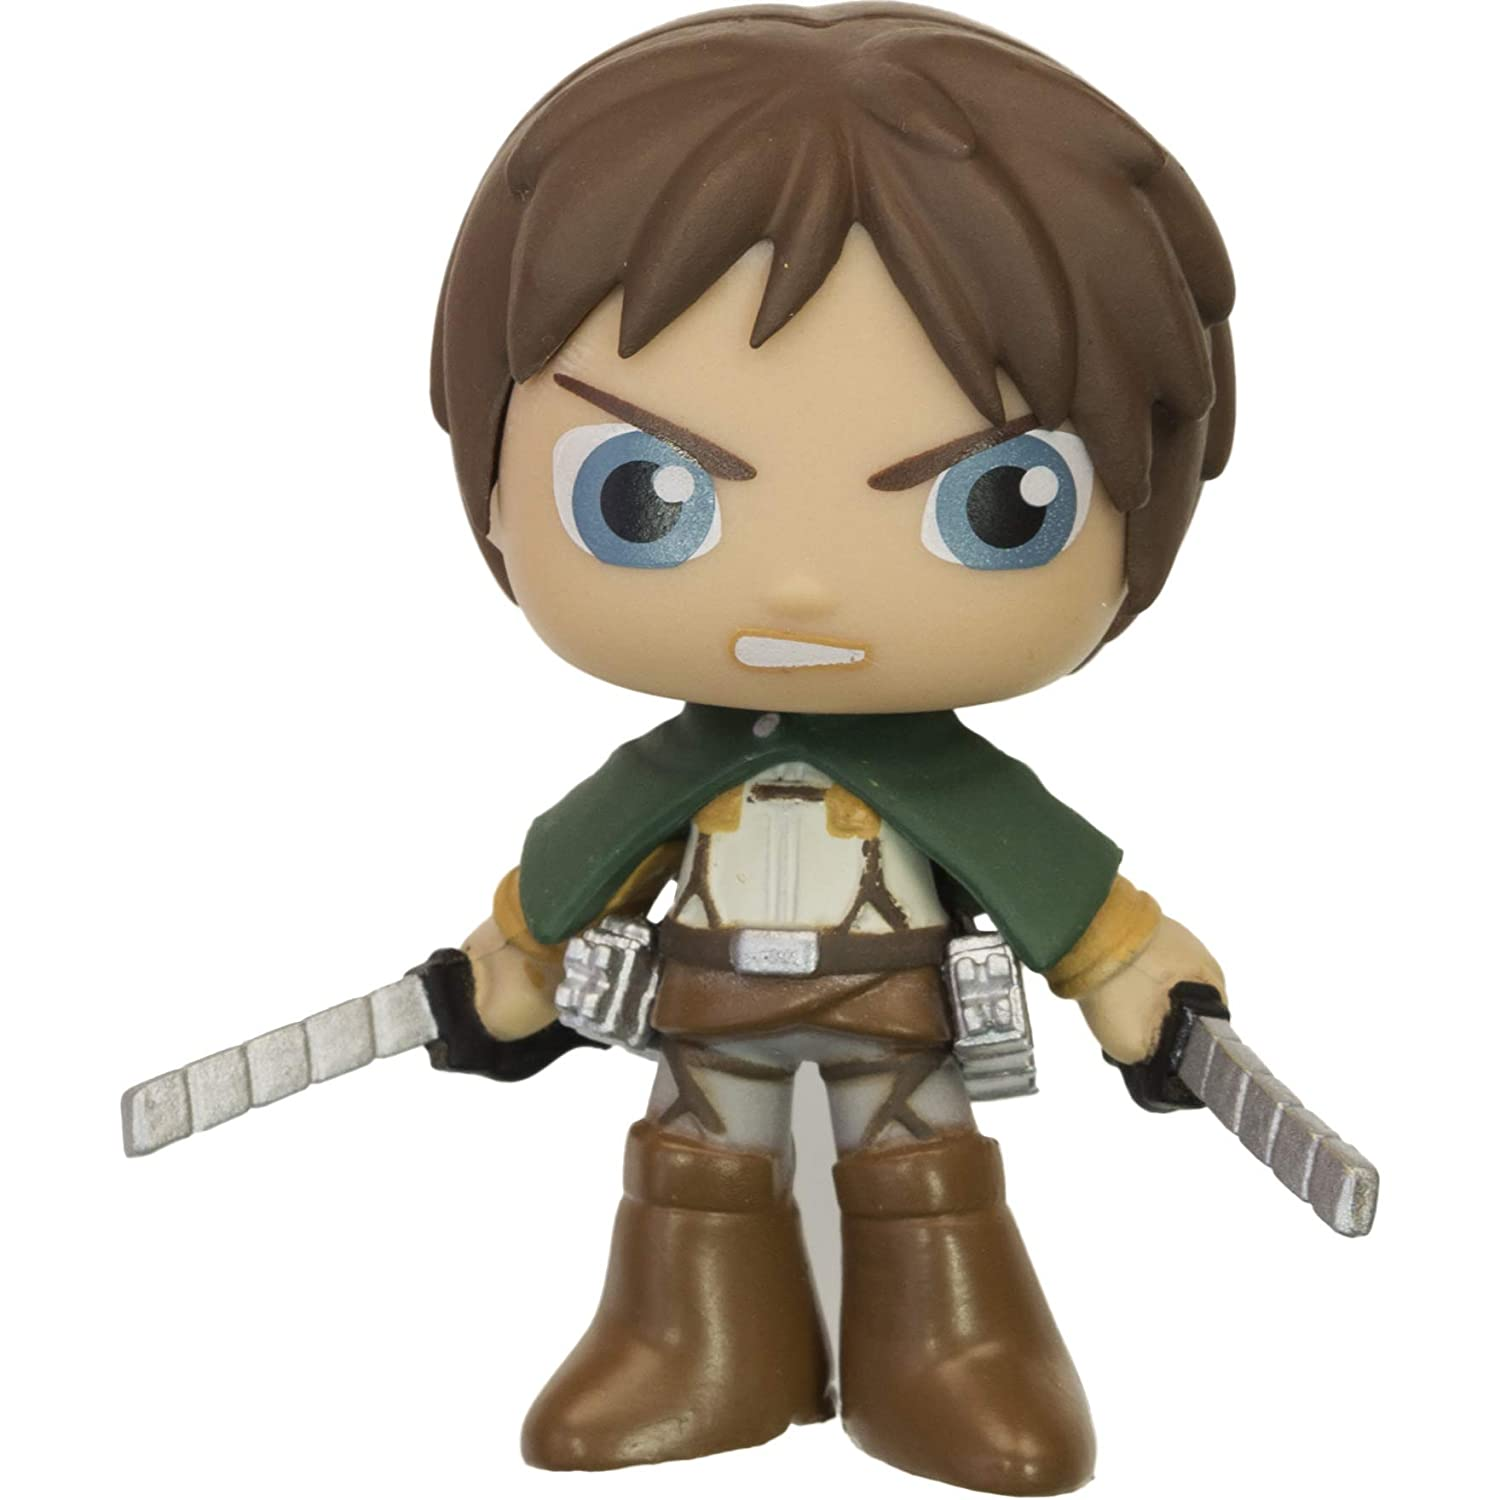 Funko Eren Jaeger 06146 - B BCC9U9414 ~2.6 x Best of Anime Mystery Minis Mini Vinyl Figure /& 1 Mystery Minis Compatible PET Plastic Graphical Protector Bundle